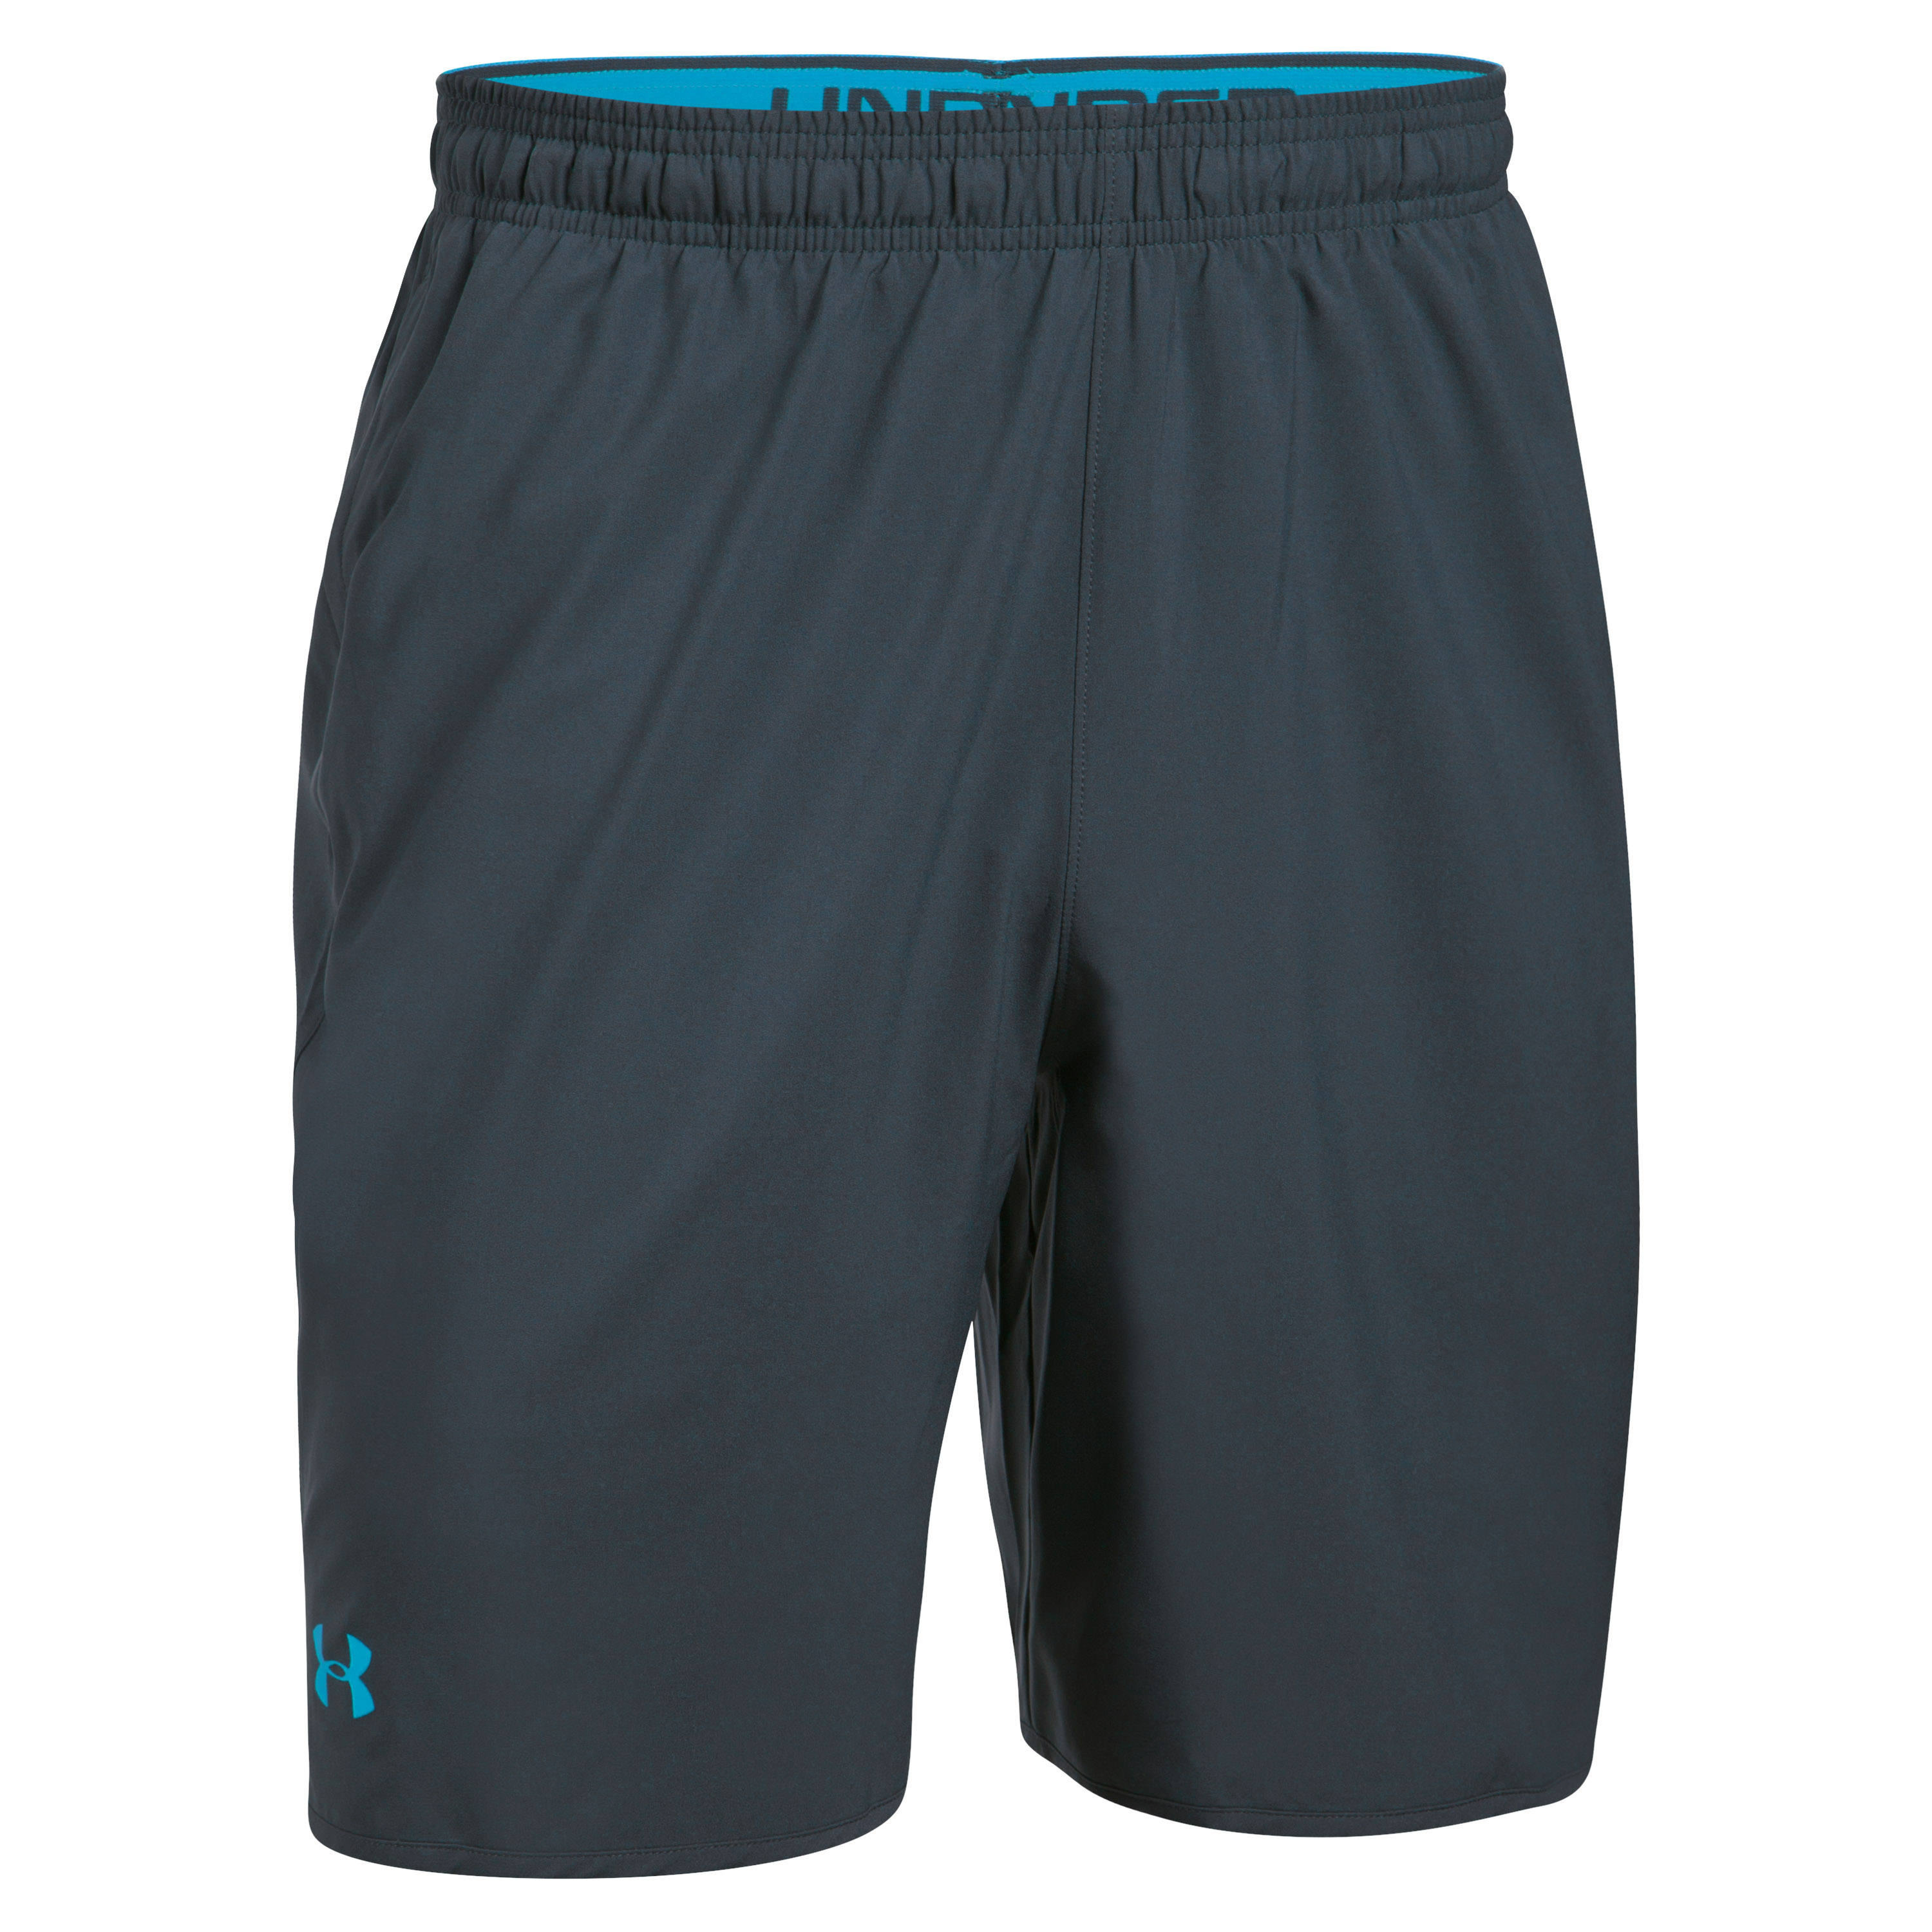 Under Armour Short Qualifier Woven gray